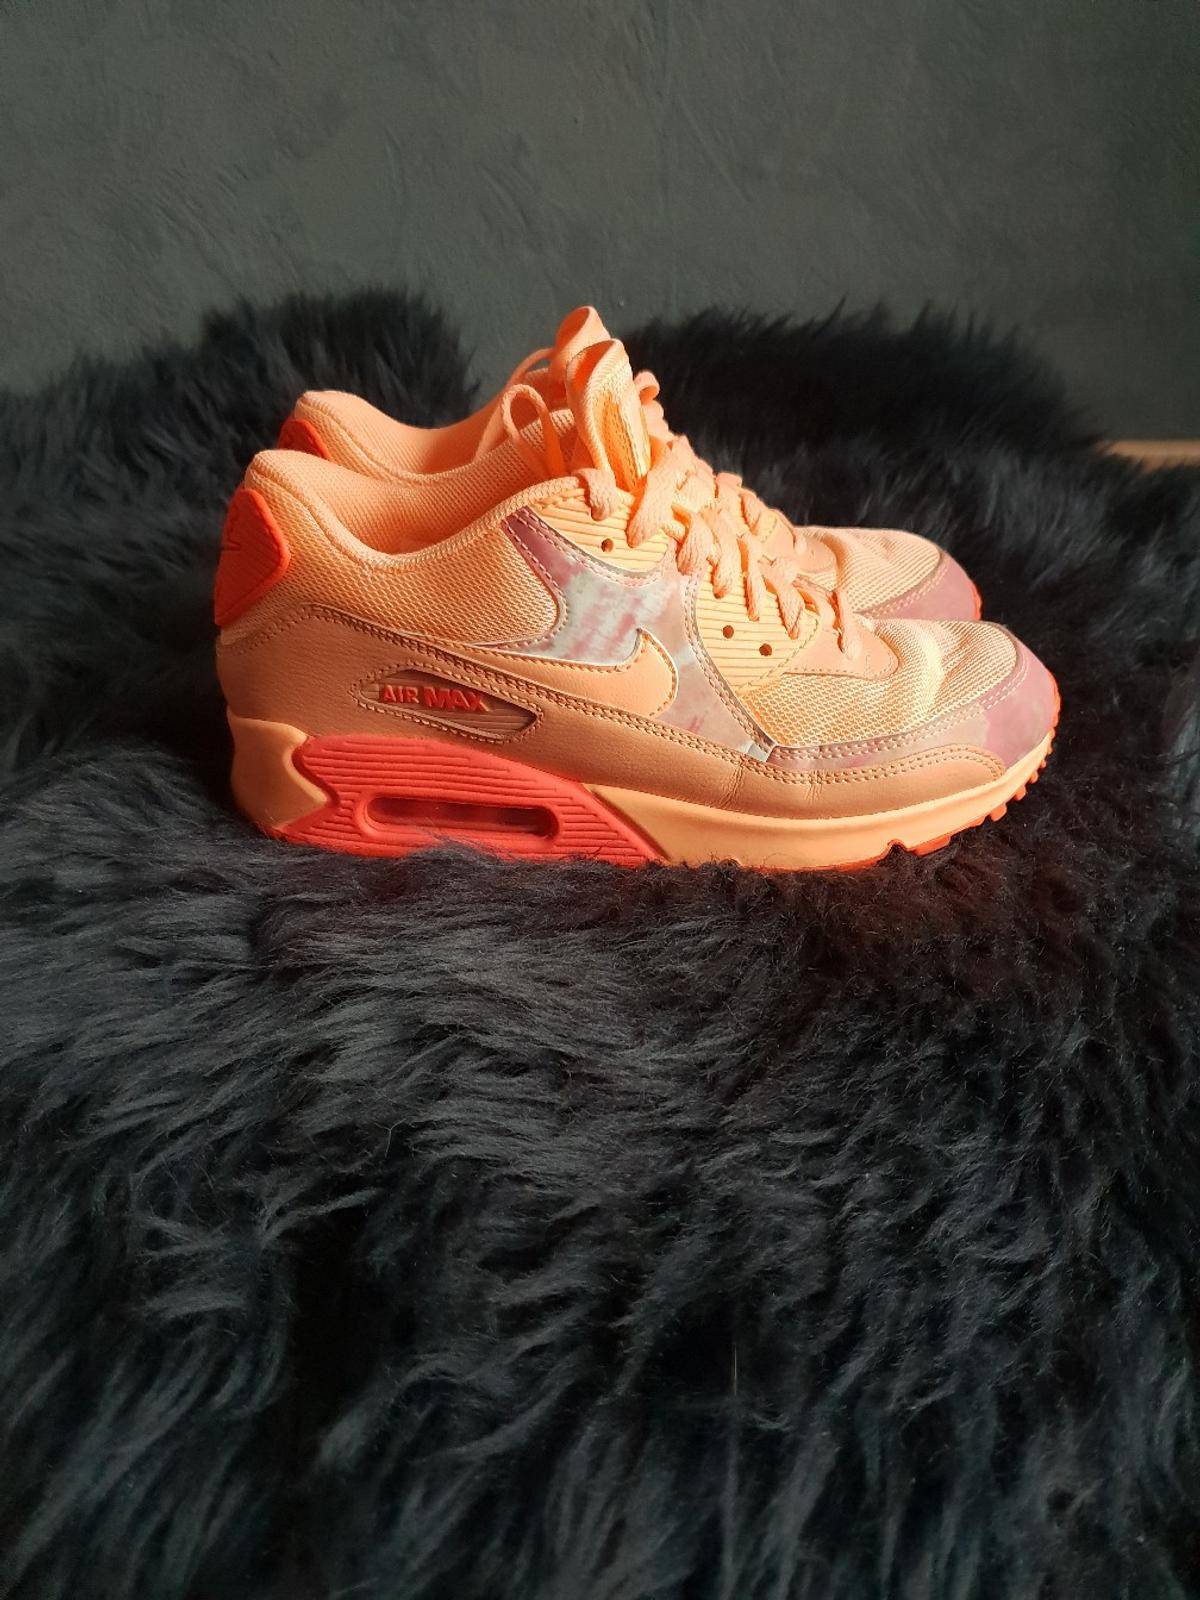 Nike air max 90 Damen lachs orange 39 in 74074 Heilbronn for